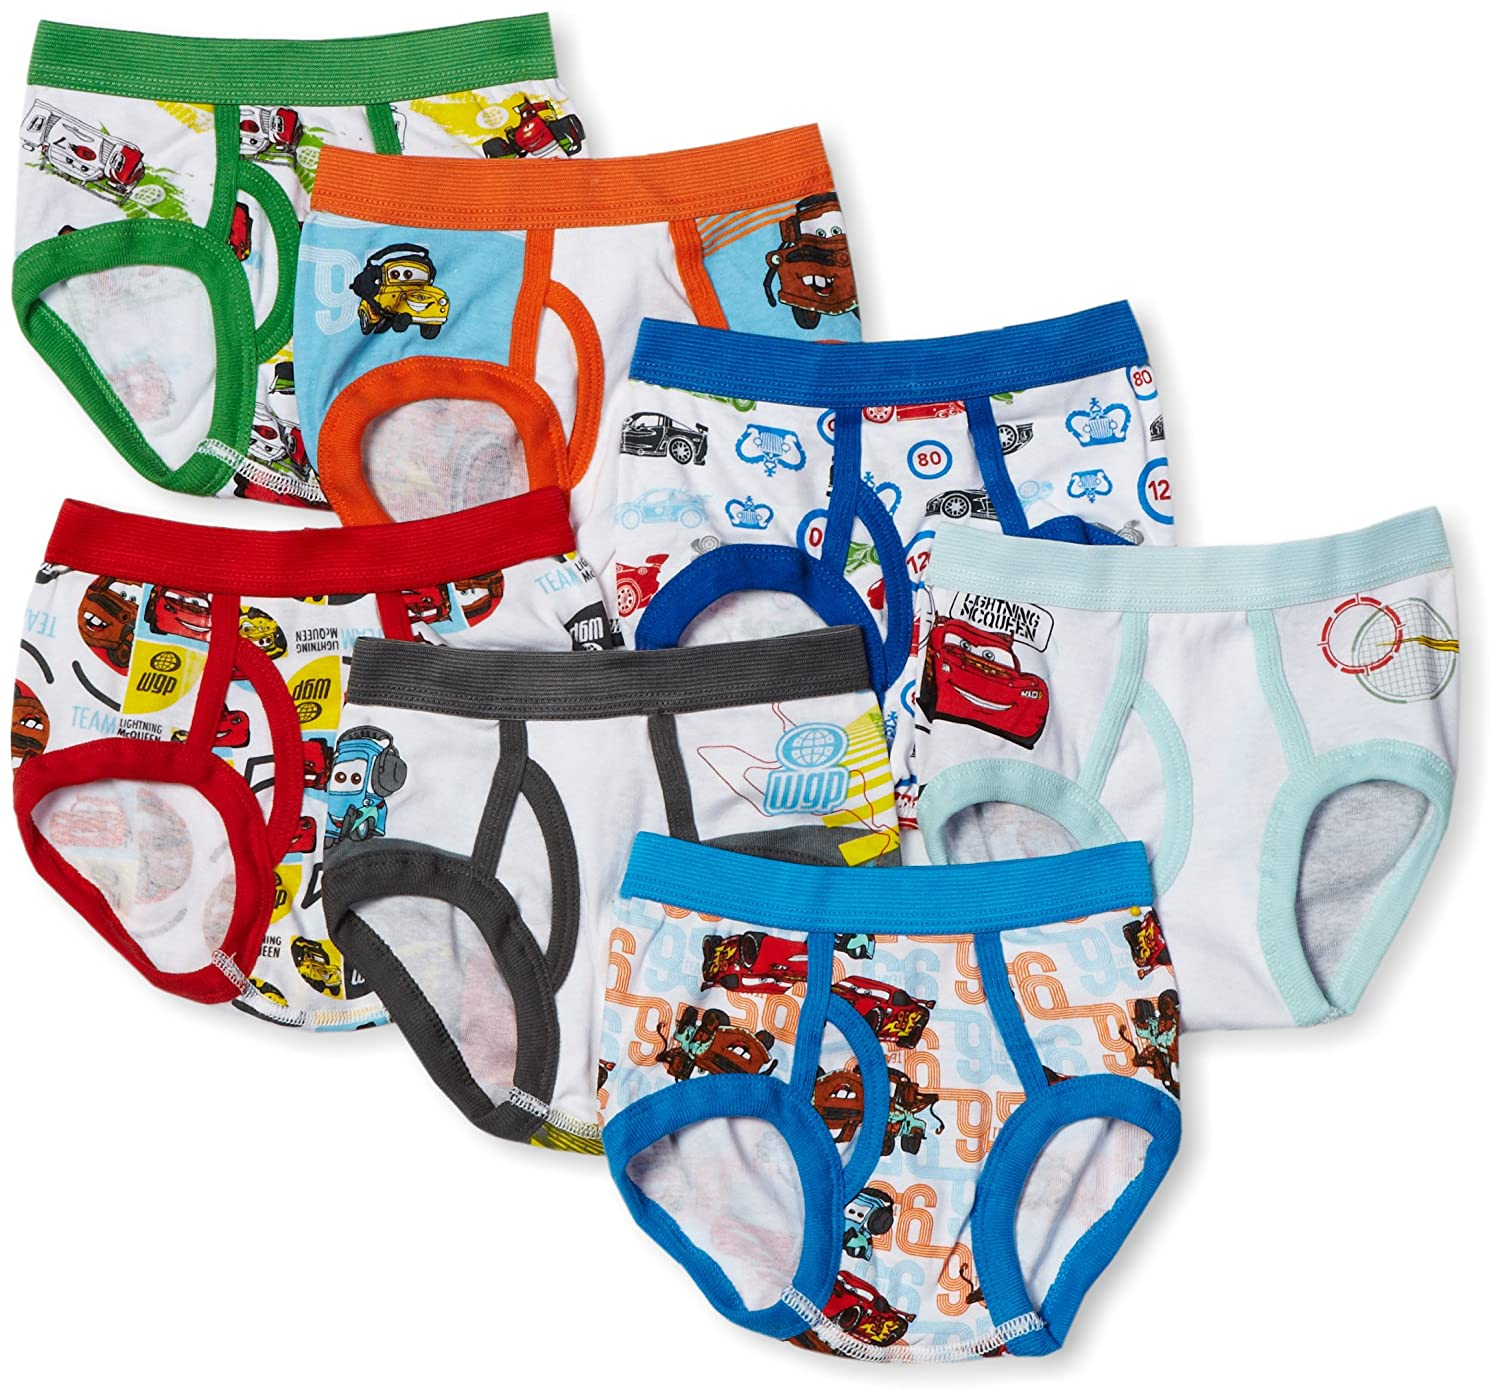 Amazon.com: Boys underwear, Boys boxers, Boys briefs, Boys boxer ...boys underwear